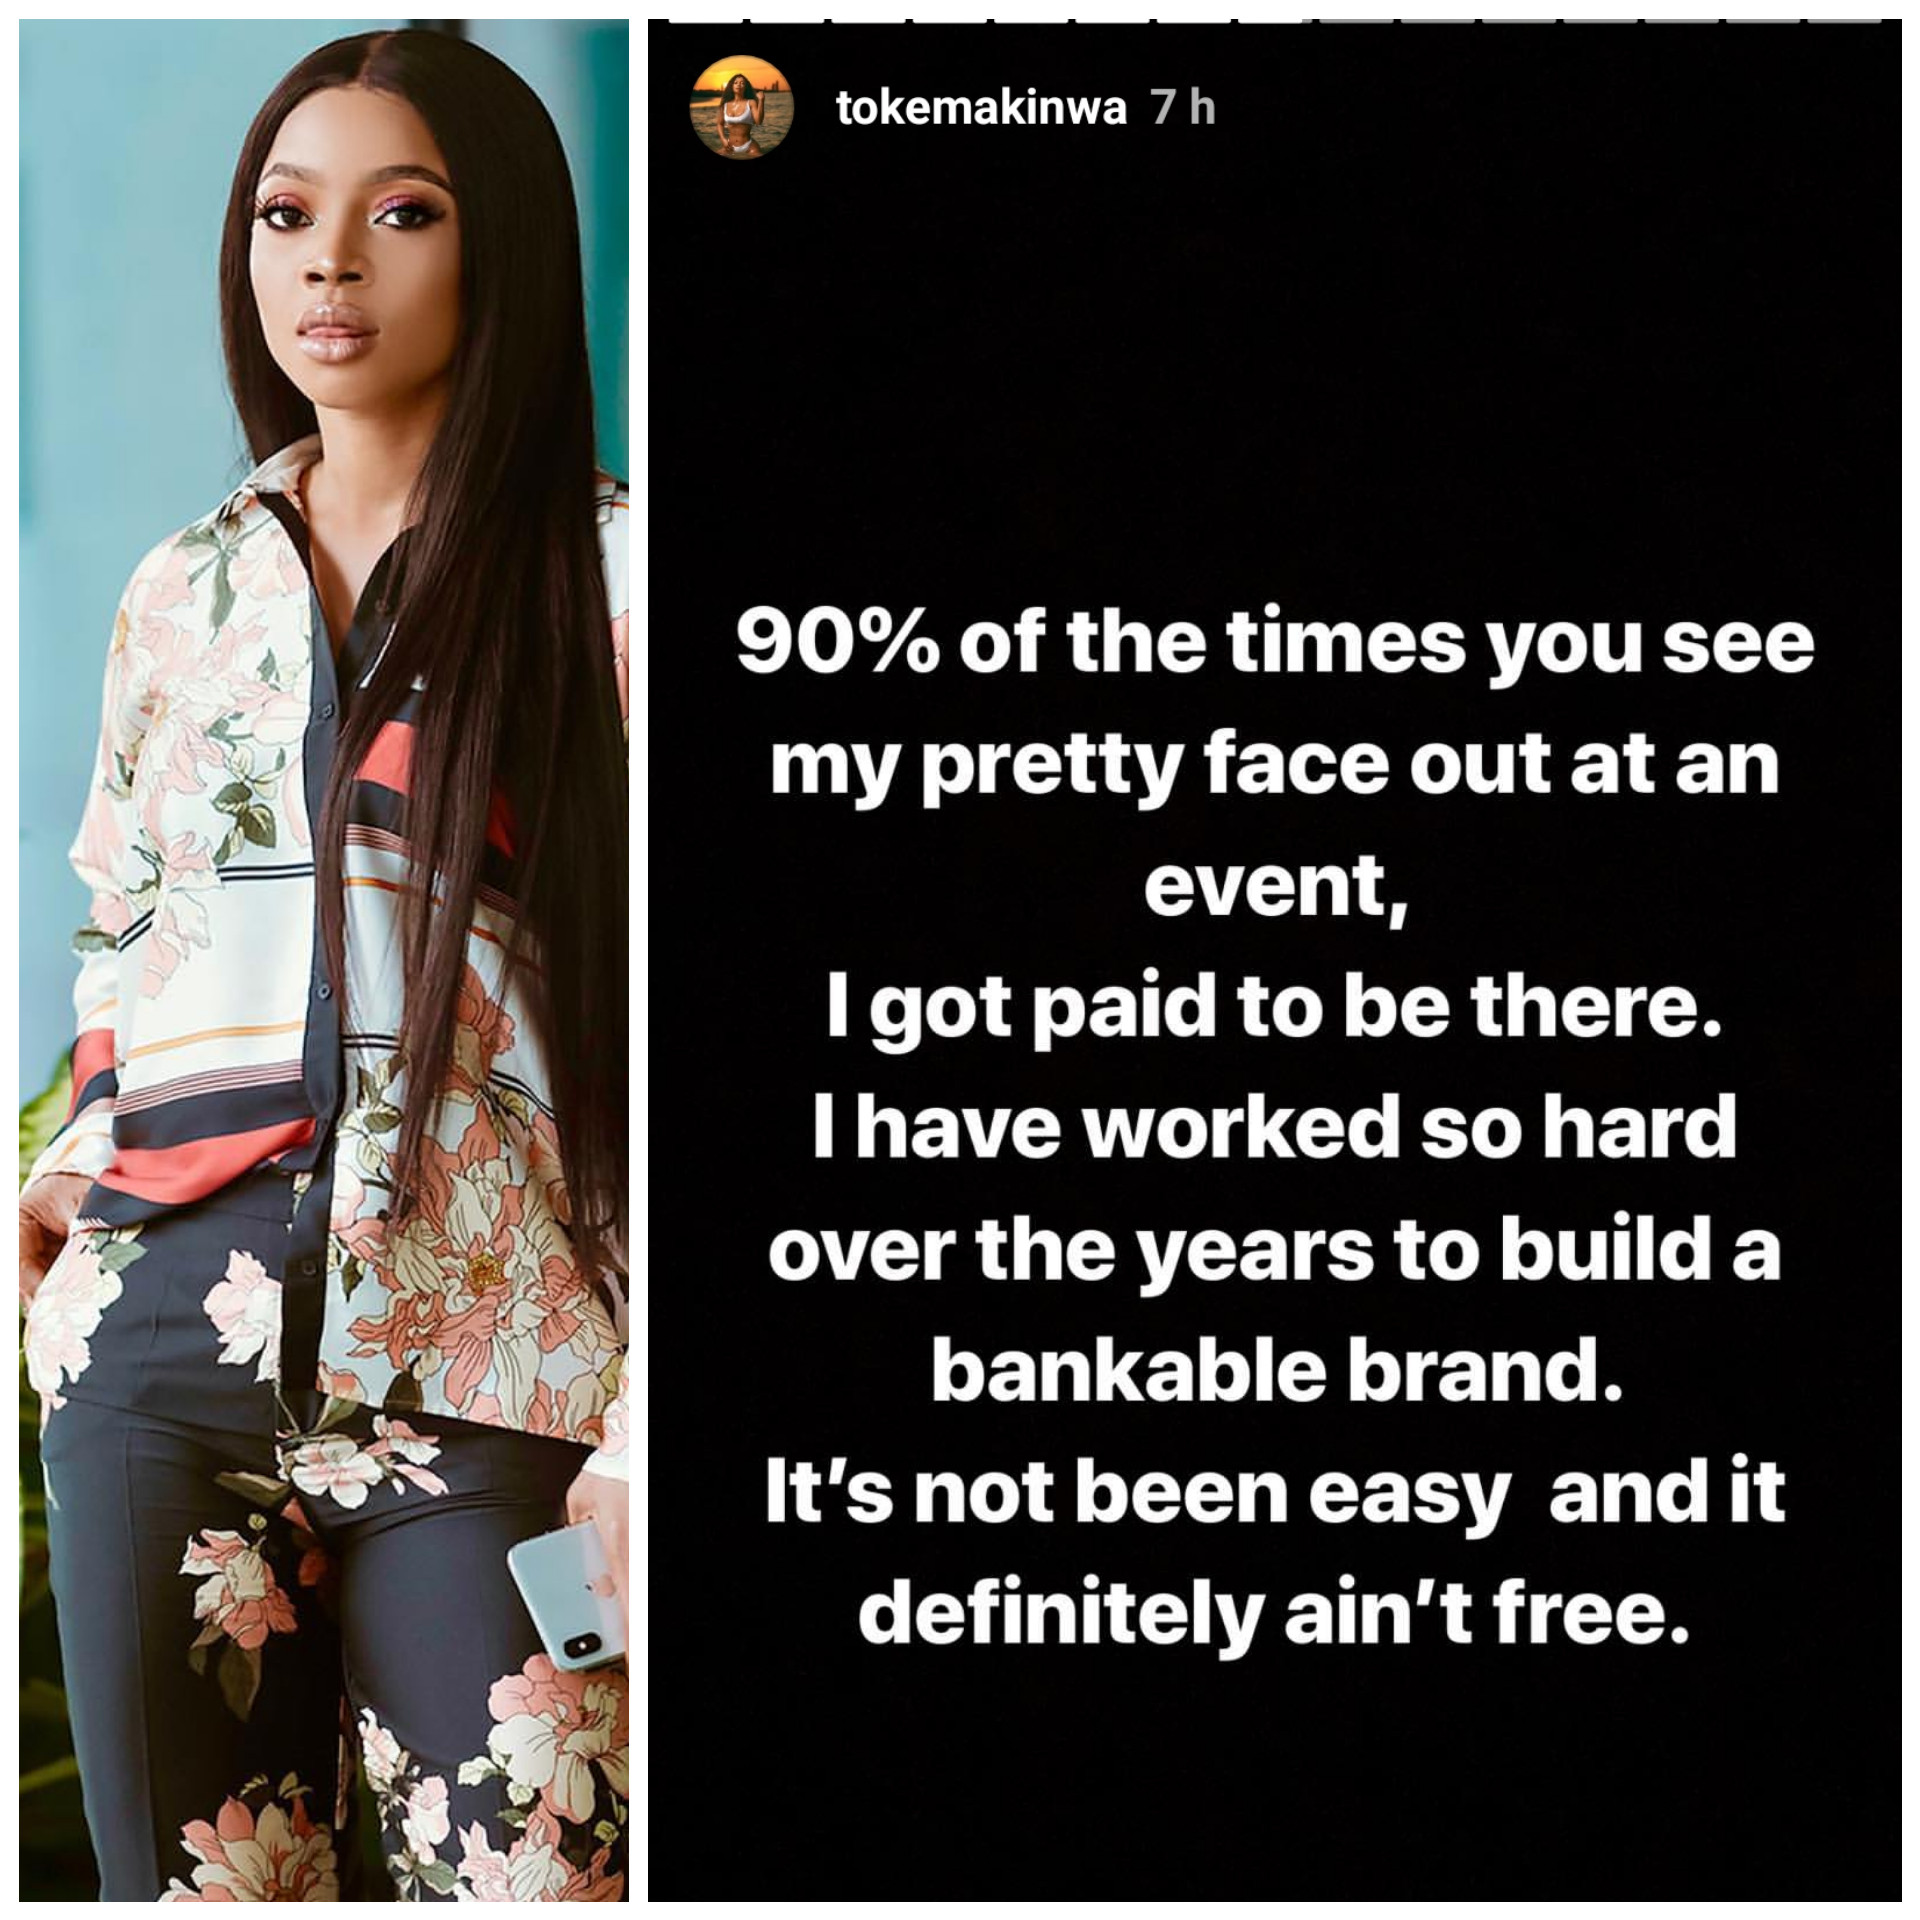 'I get paid to take my pretty face to events' - Toke Makinwa